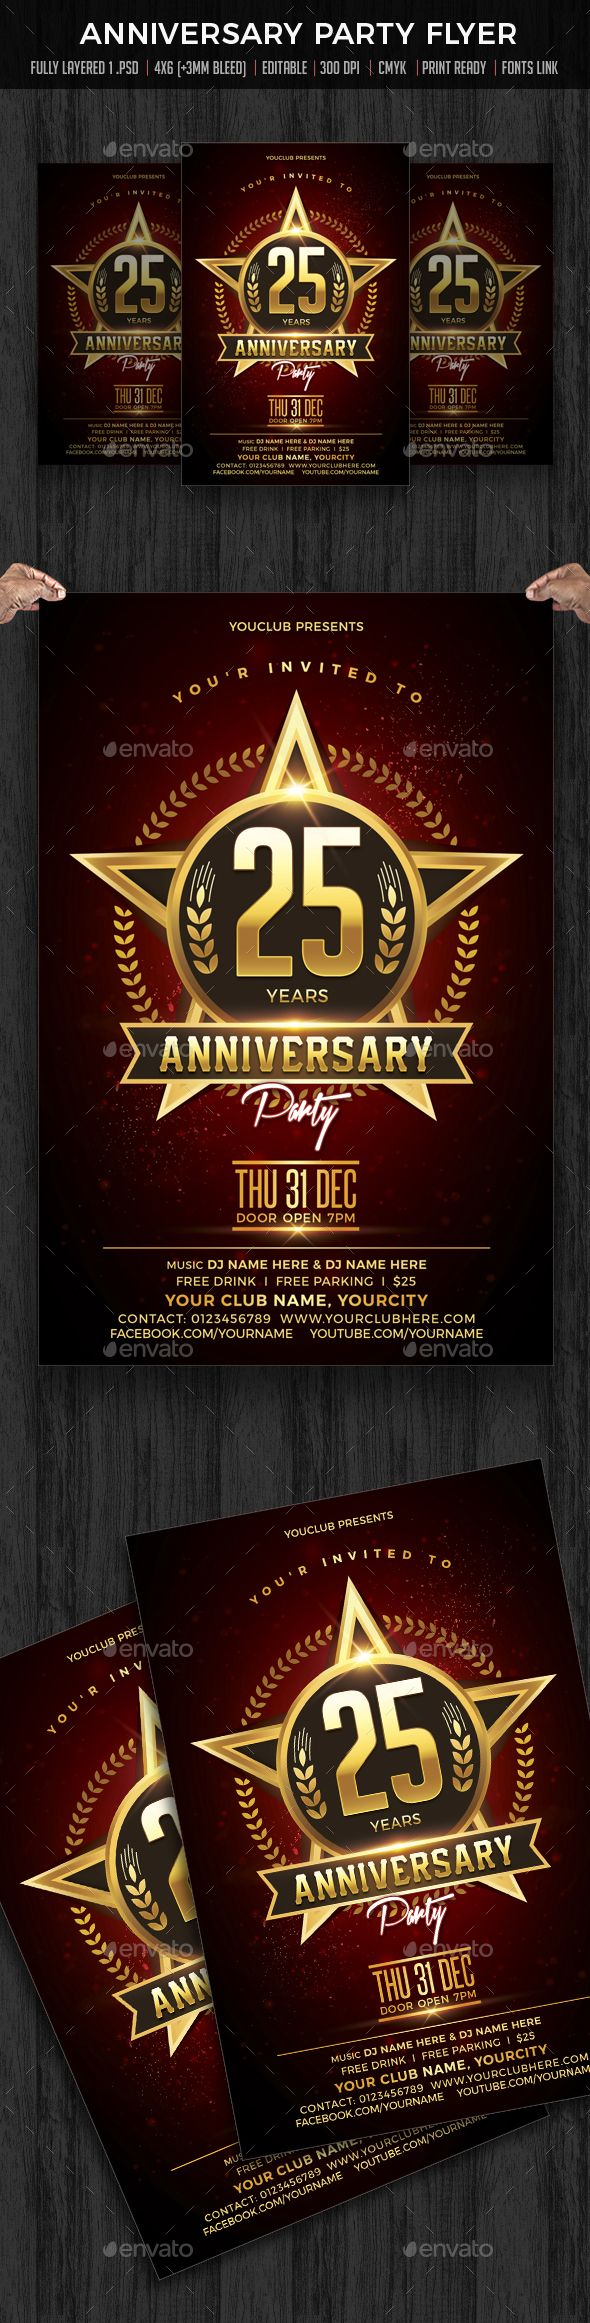 Anniversary Party Flyer Template Psd  Flyer Templates